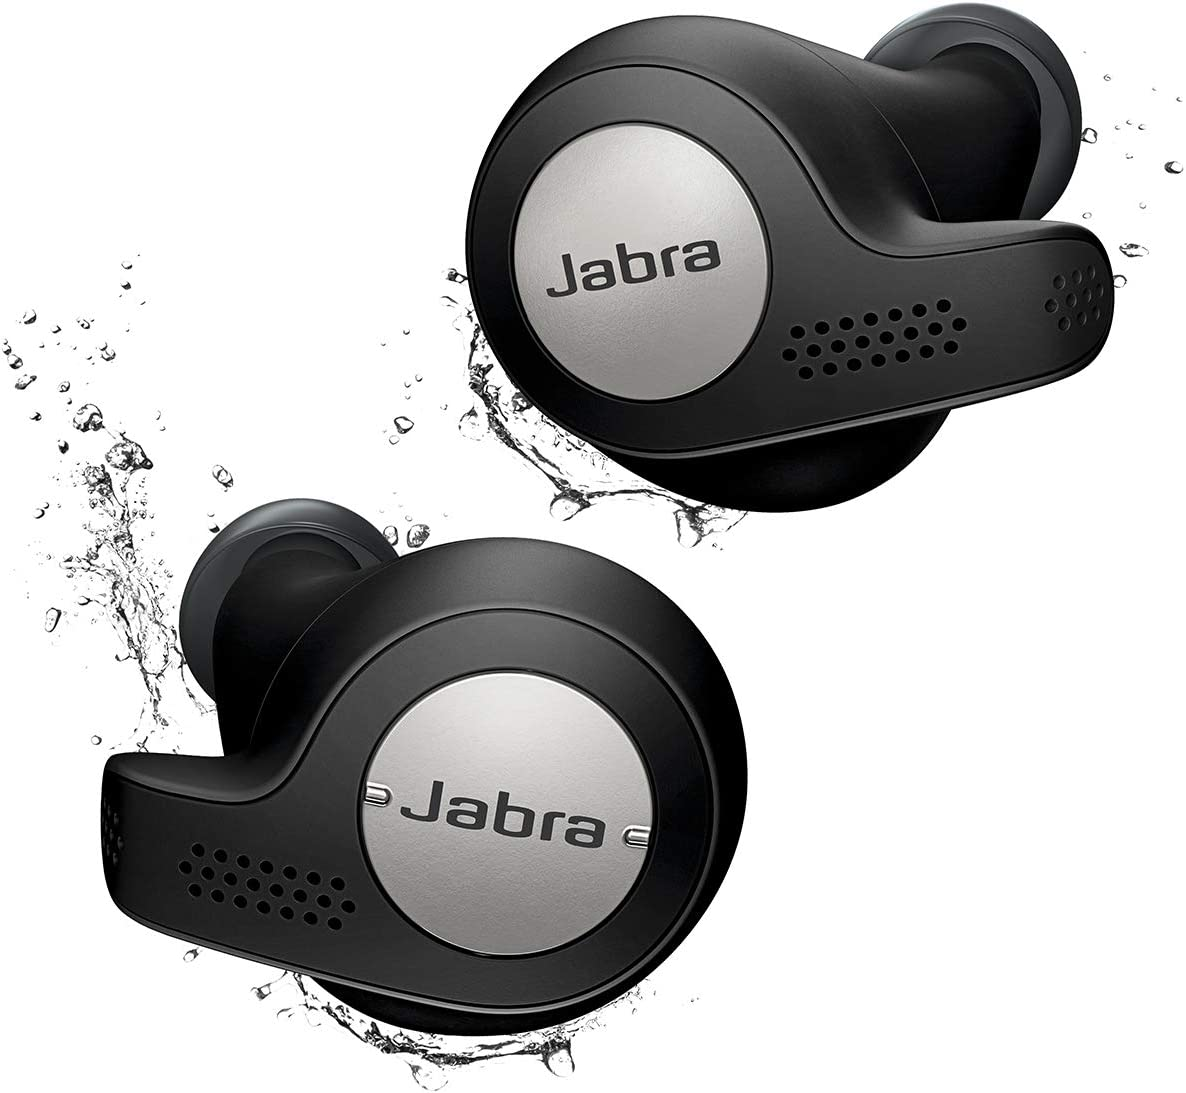 Jabra Elite Active 65t Alexa Enabled True Wireless Sports Earbuds with Charging Case – Titanium Black (Renewed)